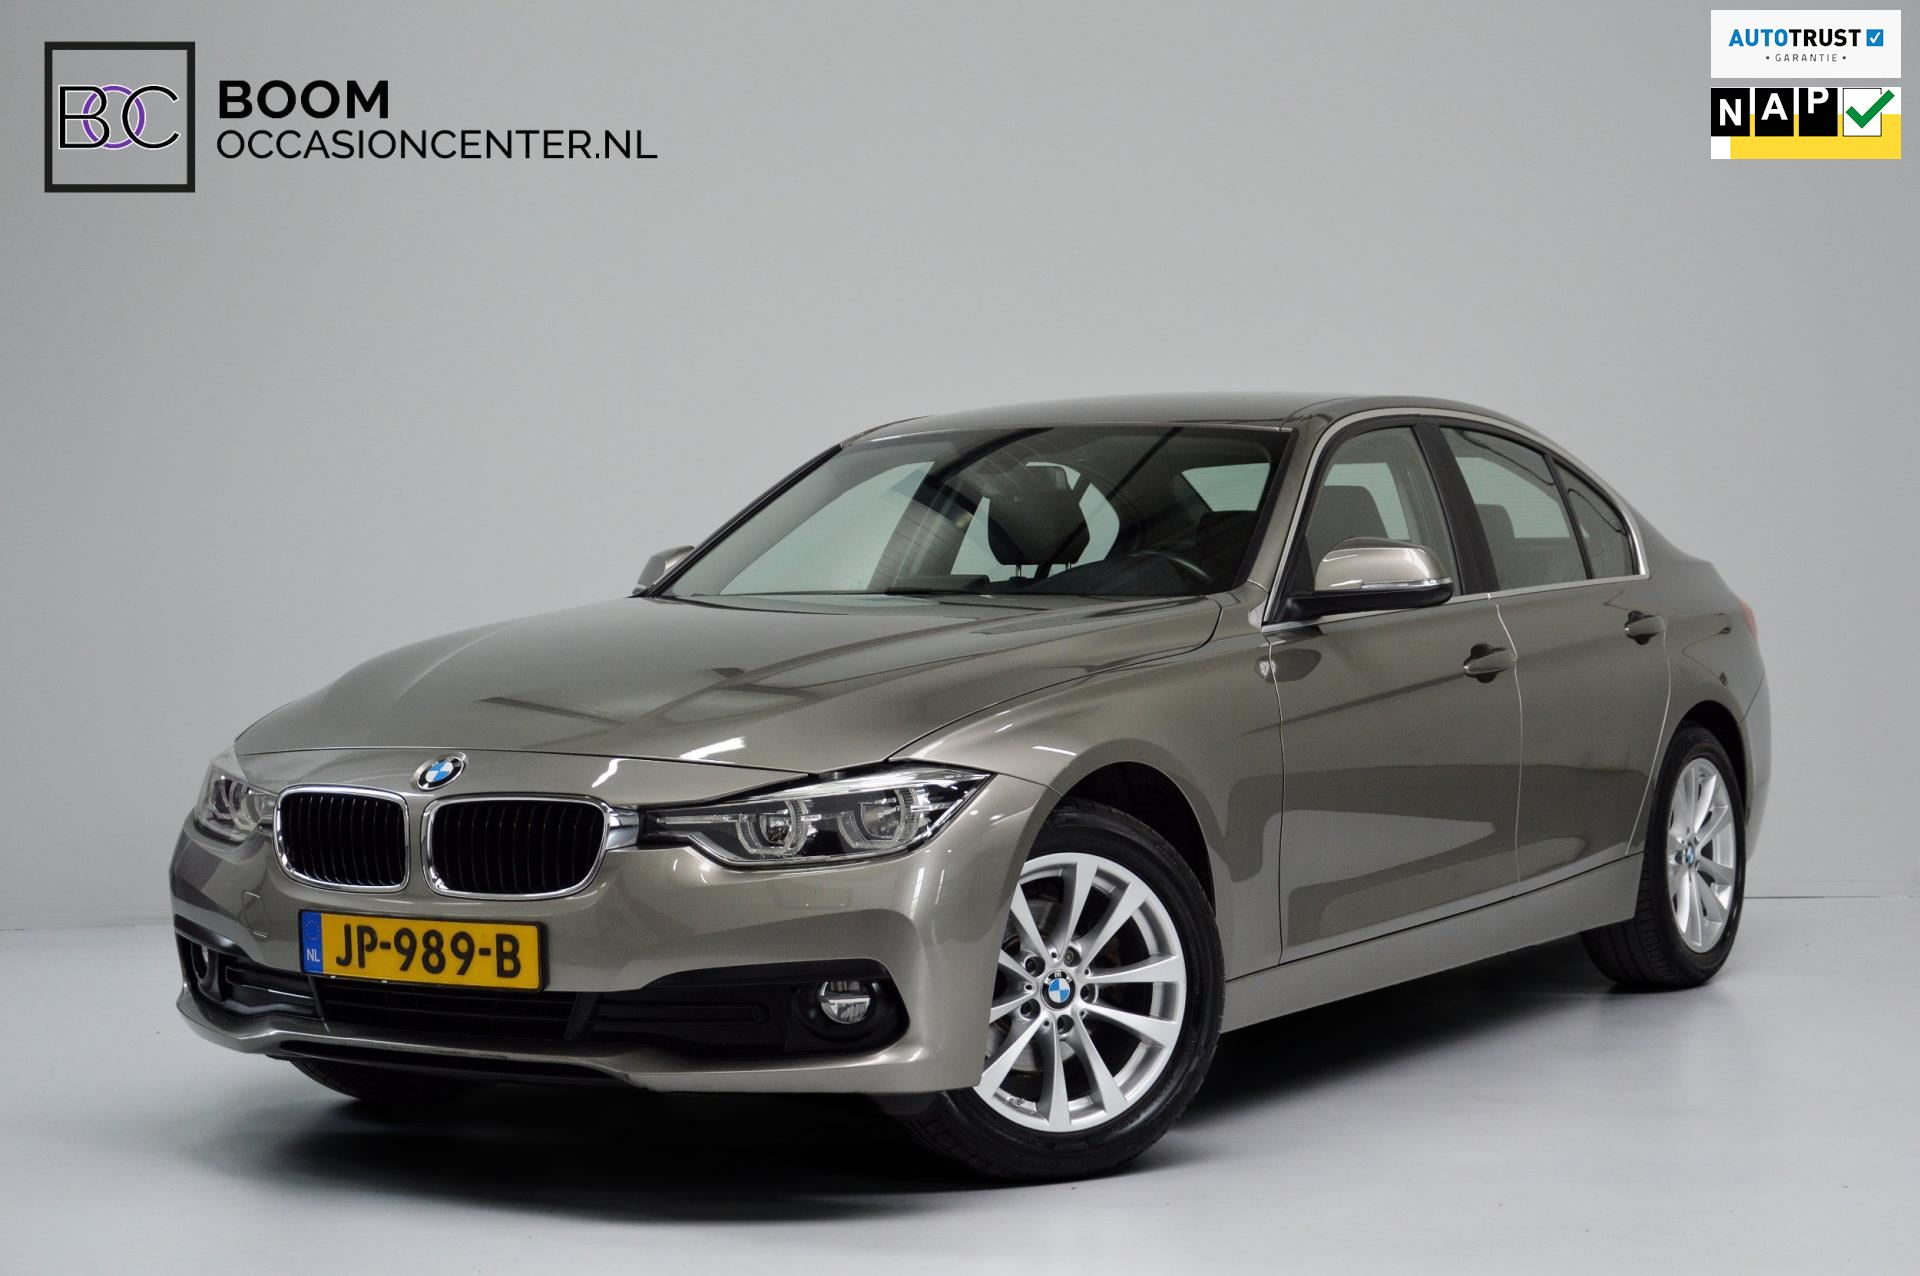 BMW 3-serie occasion - BoomOccasionCenter.nl